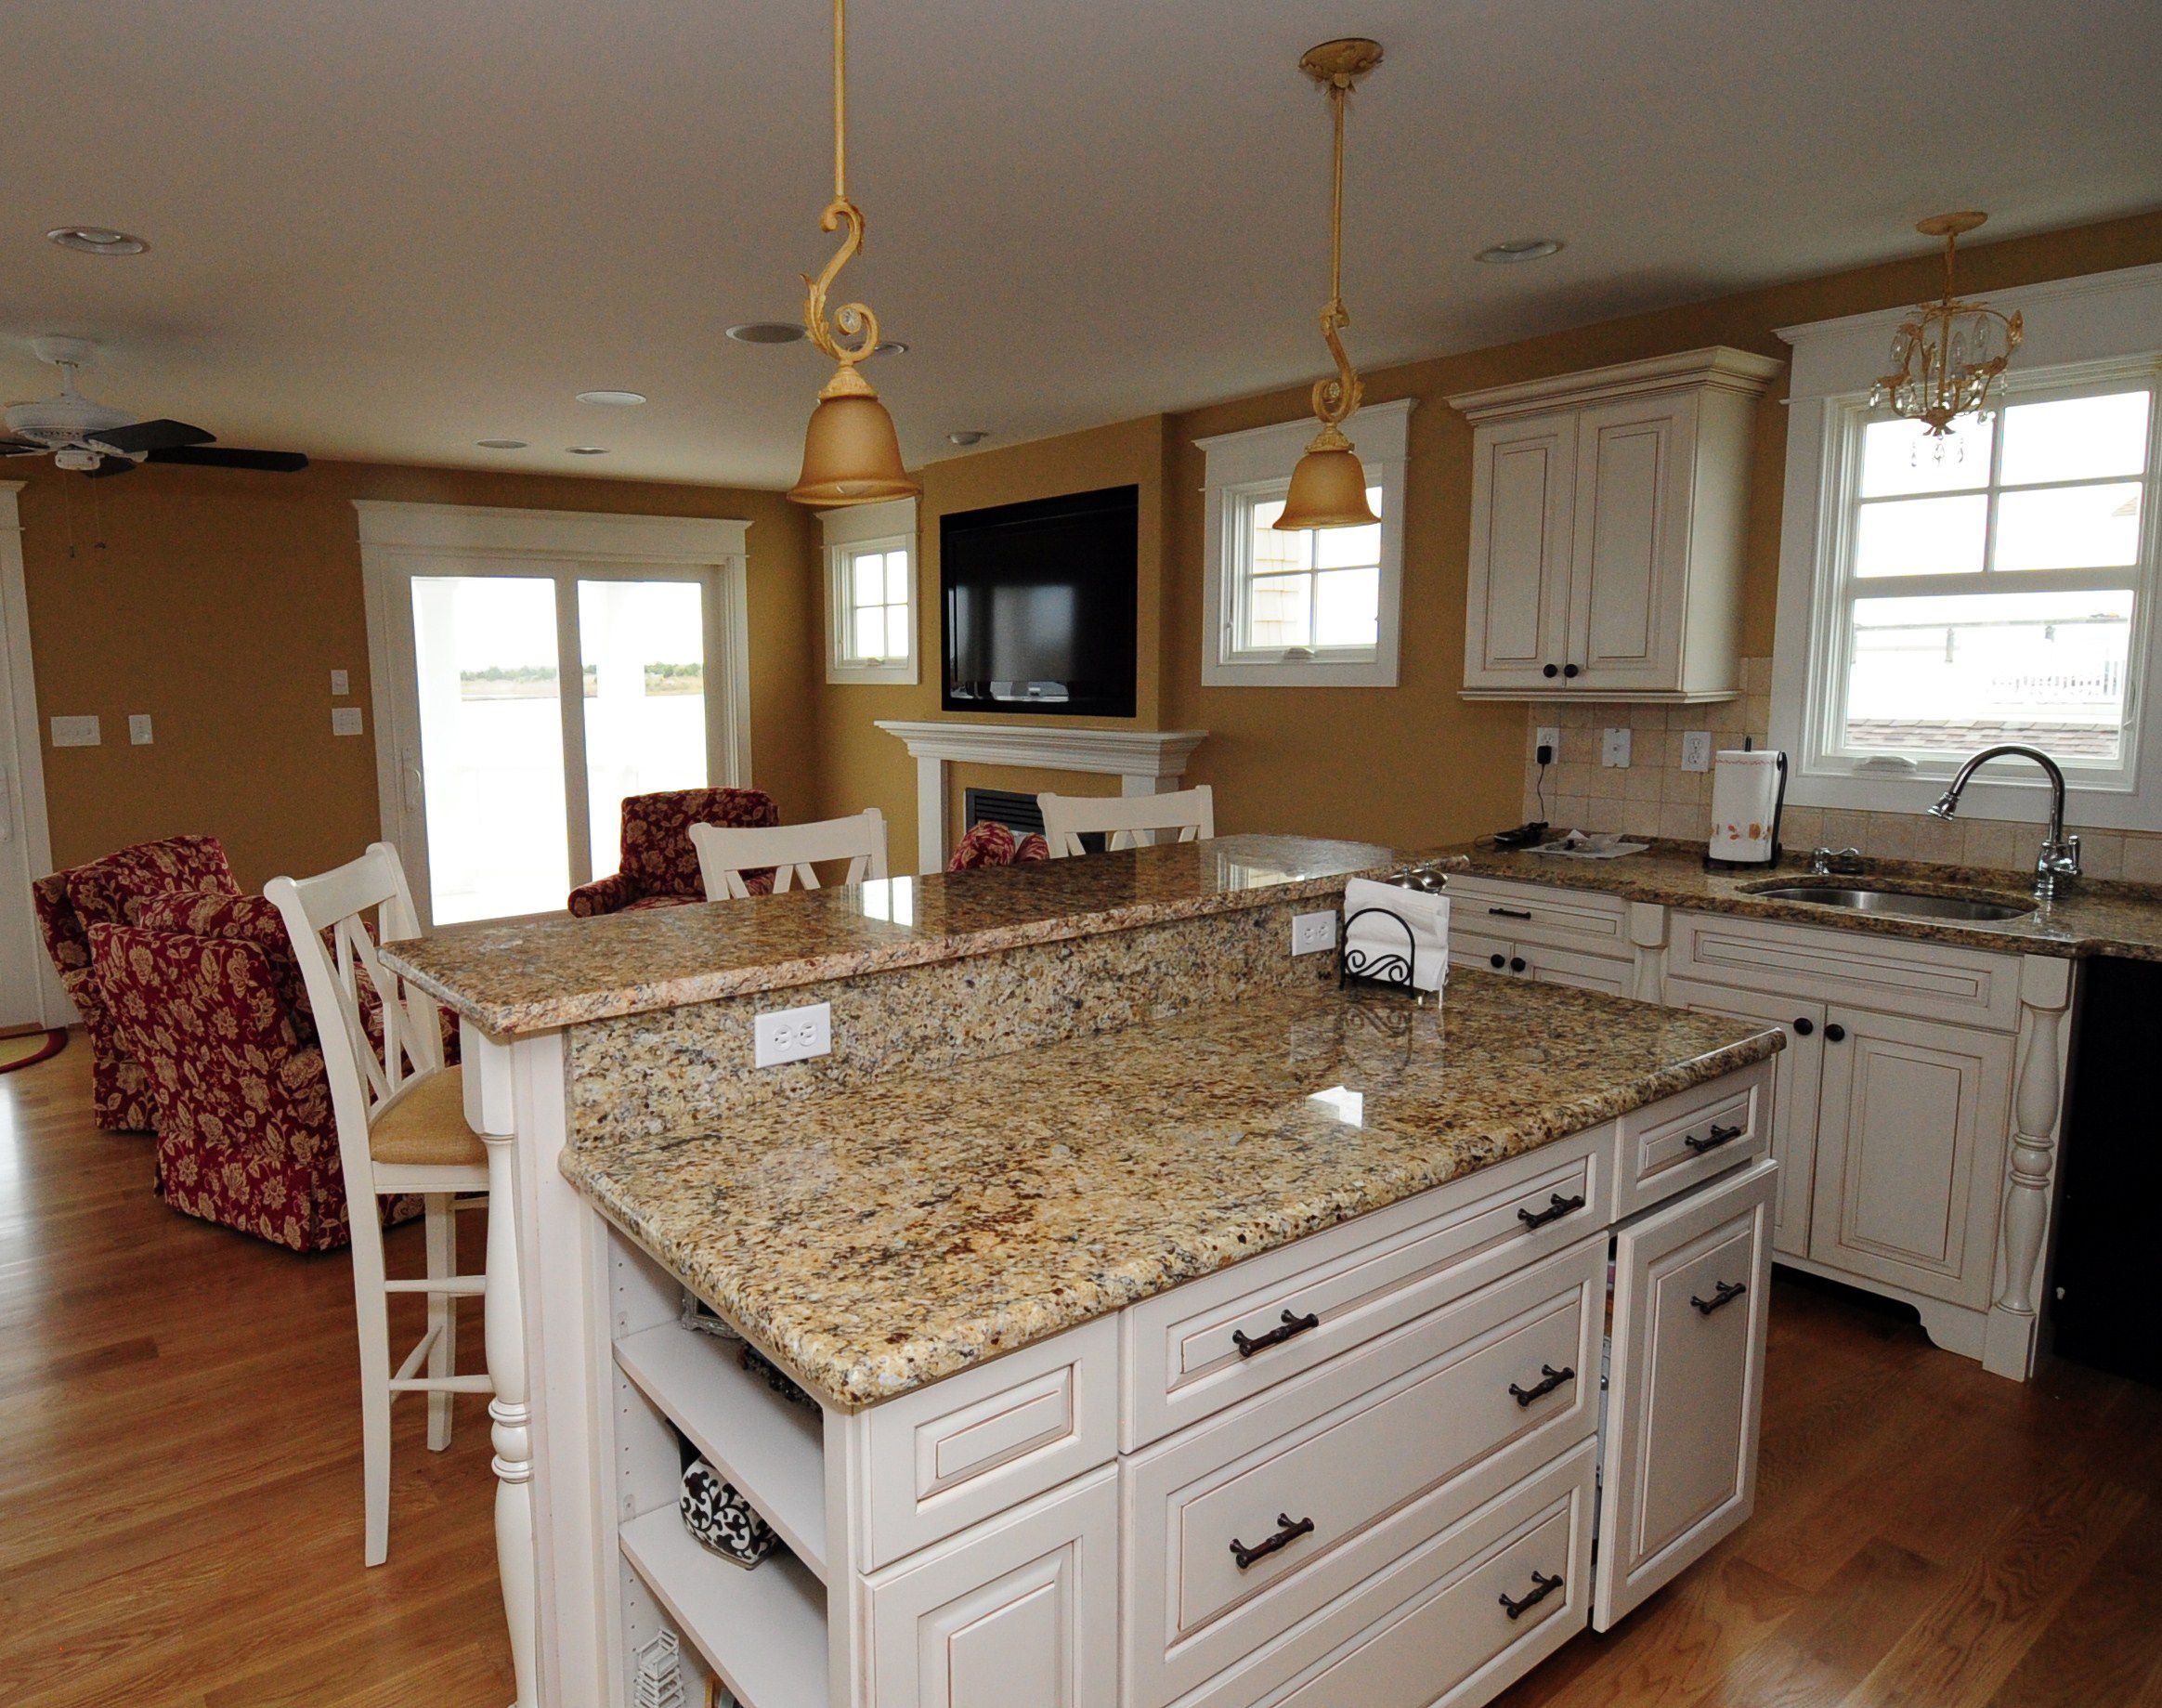 Santa Cecilia Granite Nj Cabinet Guys Kitchen Amp Bathroom Cabinets For Off White Best Images